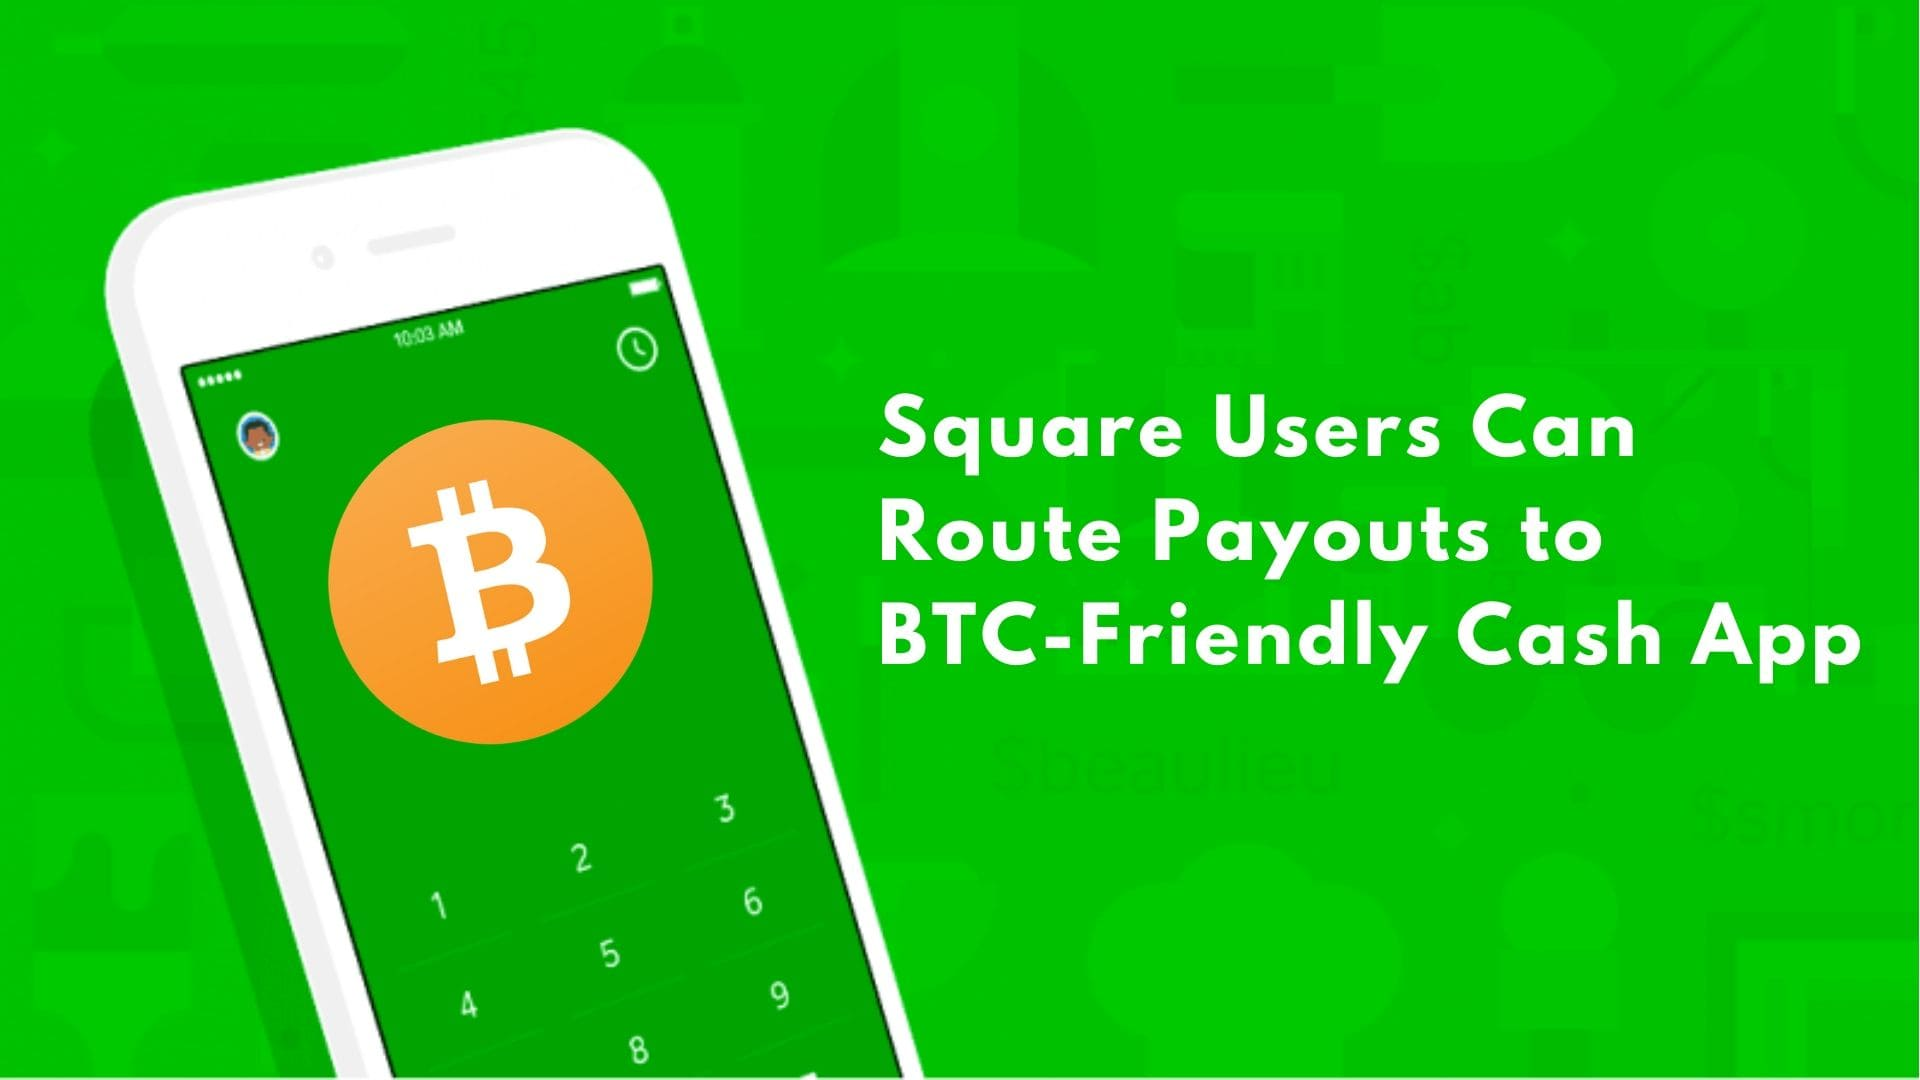 Square Users Can Route Payouts to BTC-Friendly Cash App